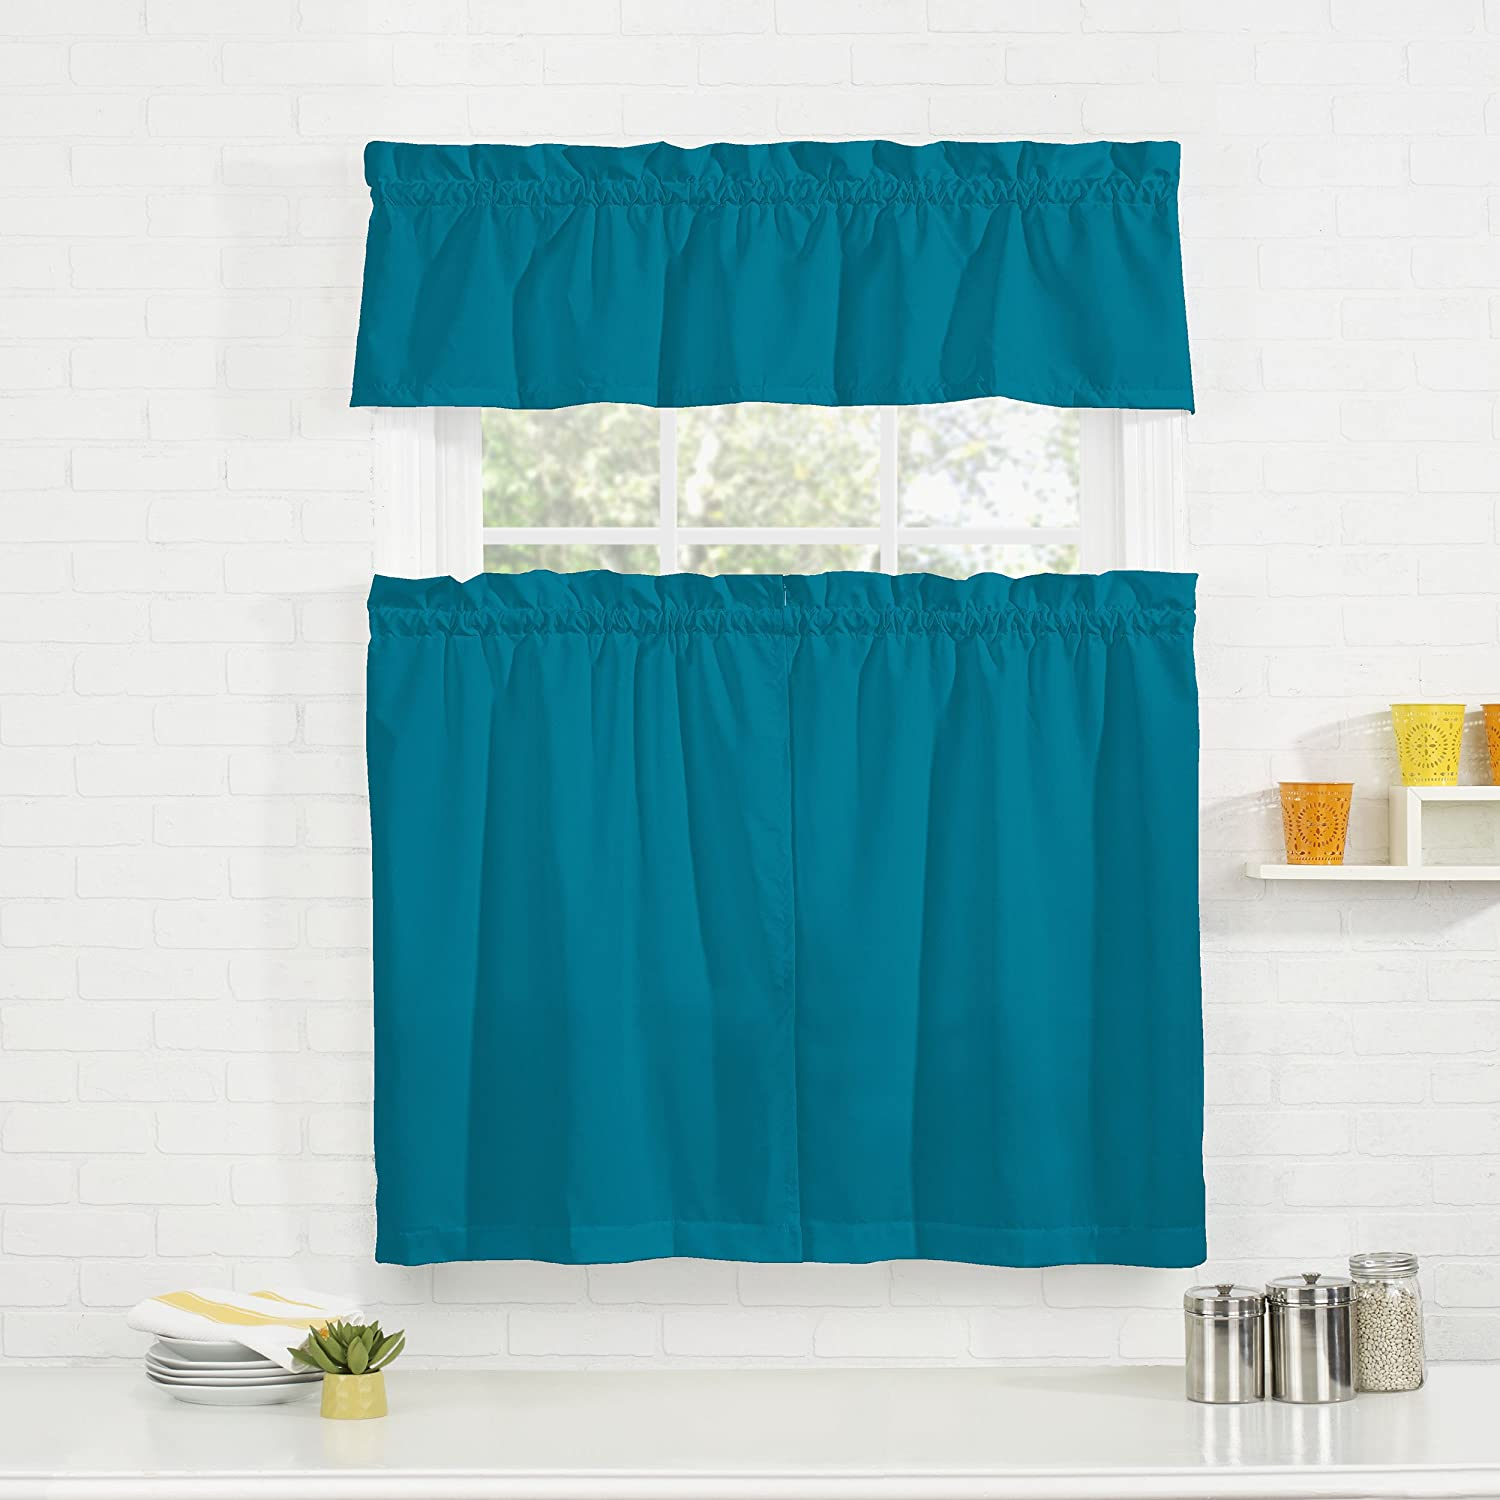 Pairs to Go Cadenza Tier Set, 56x36, Teal Ellery Homestyles 16544056X036TEL